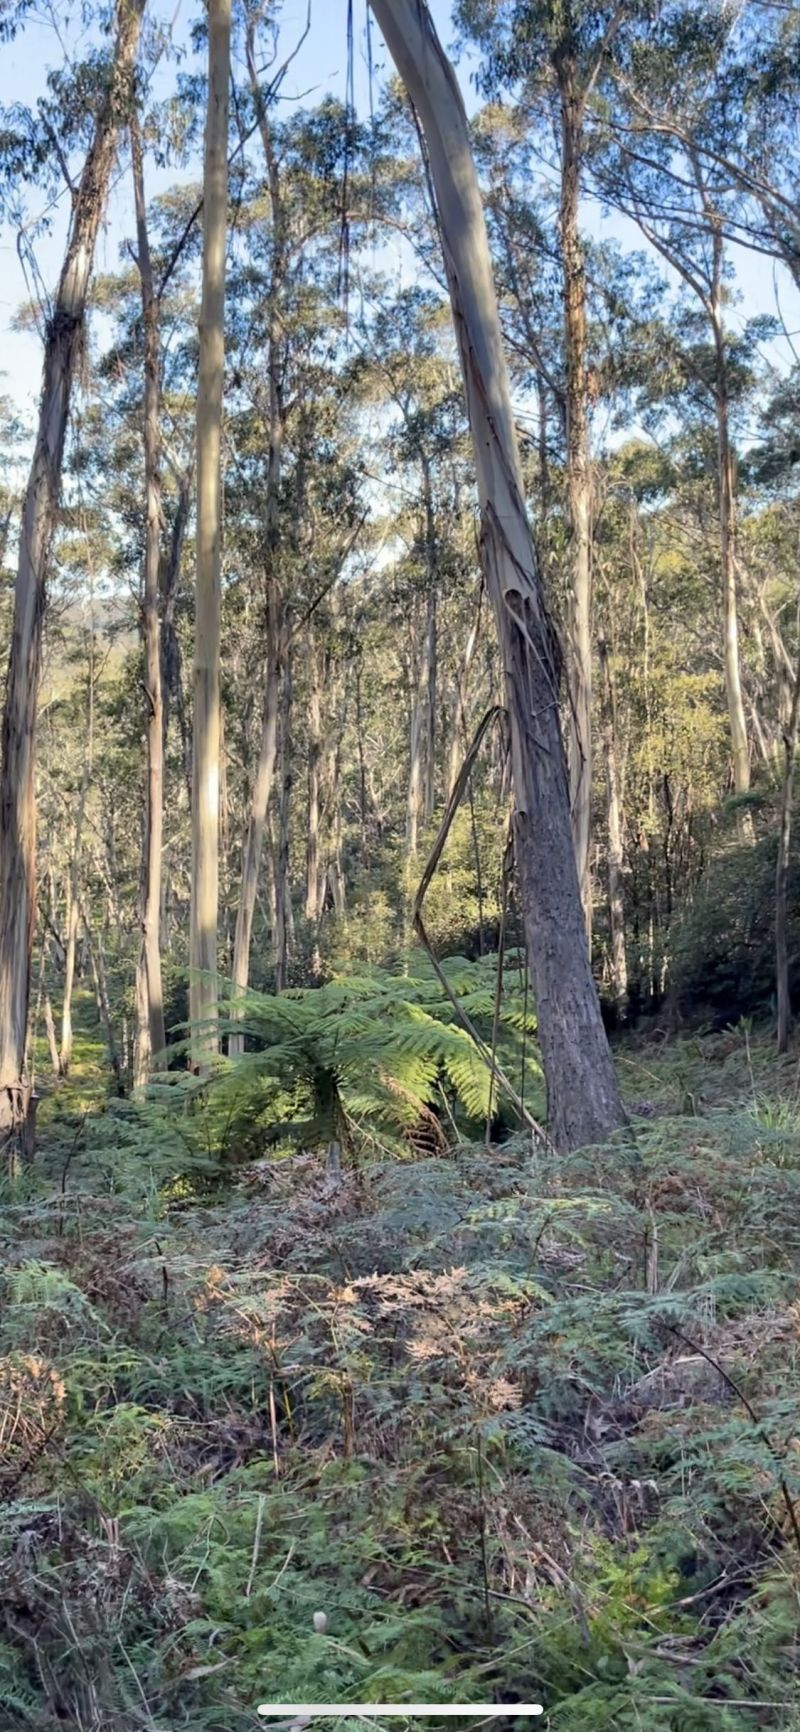 For Sale By Owner: 14 Nellies Glen Road, Katoomba, NSW 2780